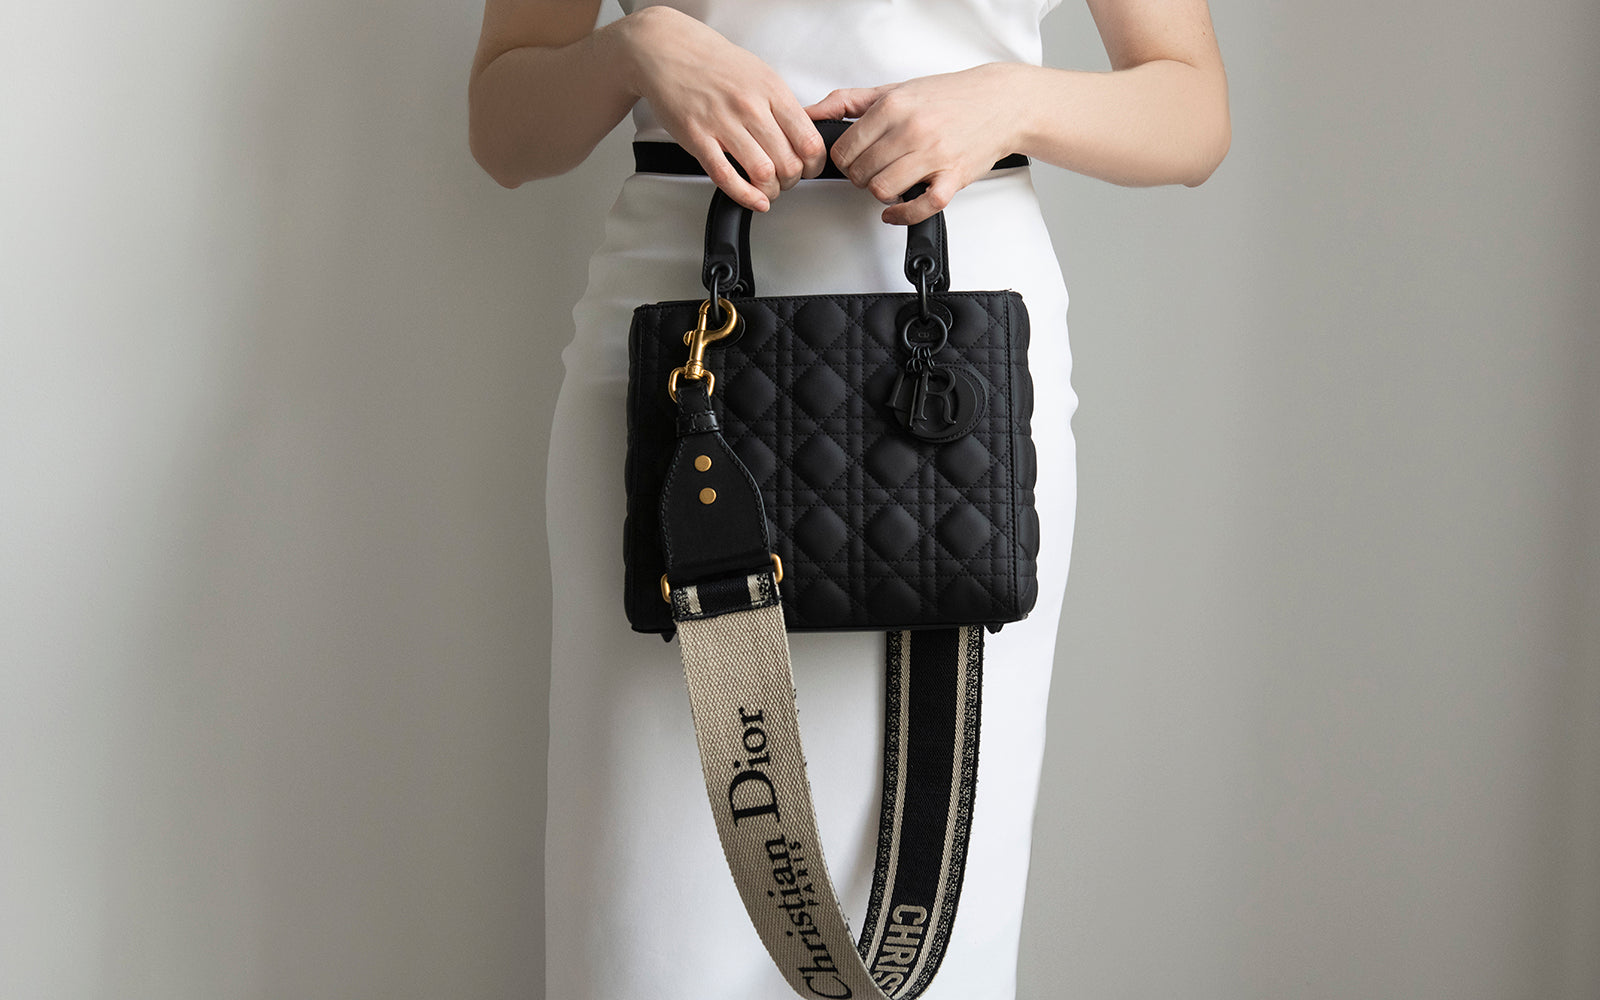 Shop authentic preowned Dior handbags and accessories